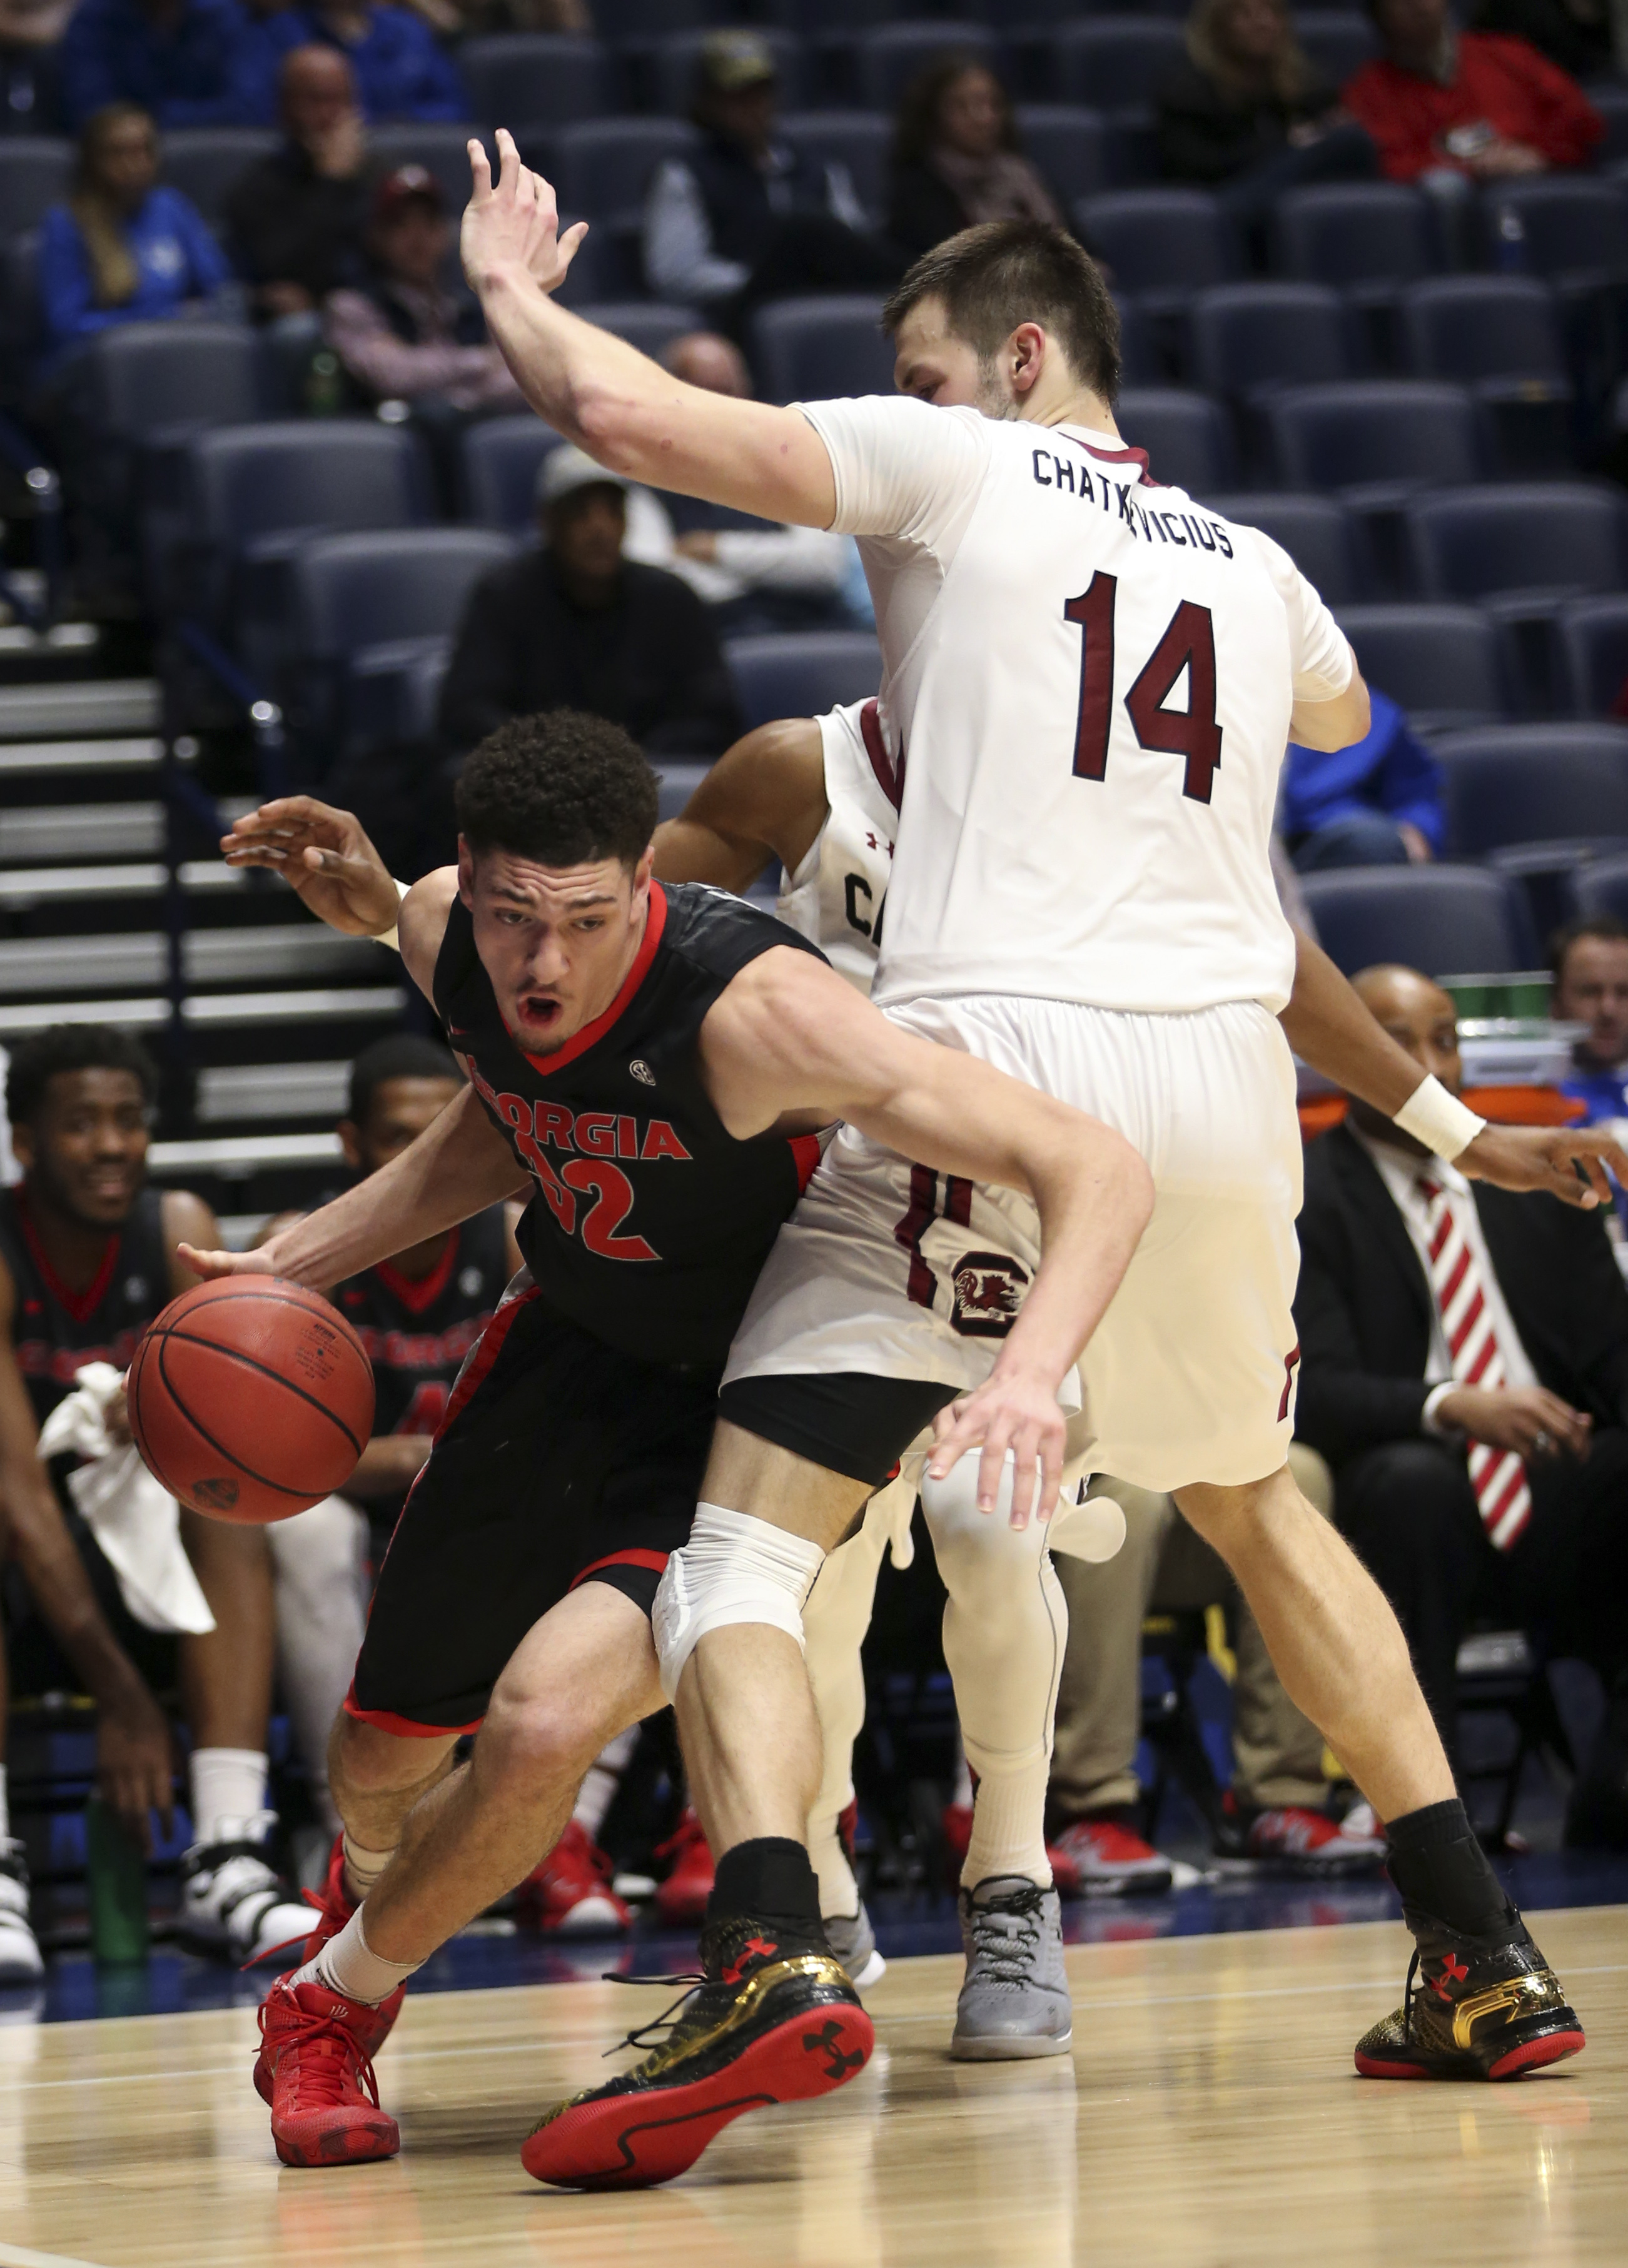 Georgia's Mike Edwards (32) drives around South Carolina's Laimonas Chatkevicius (14) during the second half of an NCAA college basketball game in the Southeastern Conference tournament in Nashville, Tenn., Friday, March 11, 2016. (AP Photo/John Bazemore)